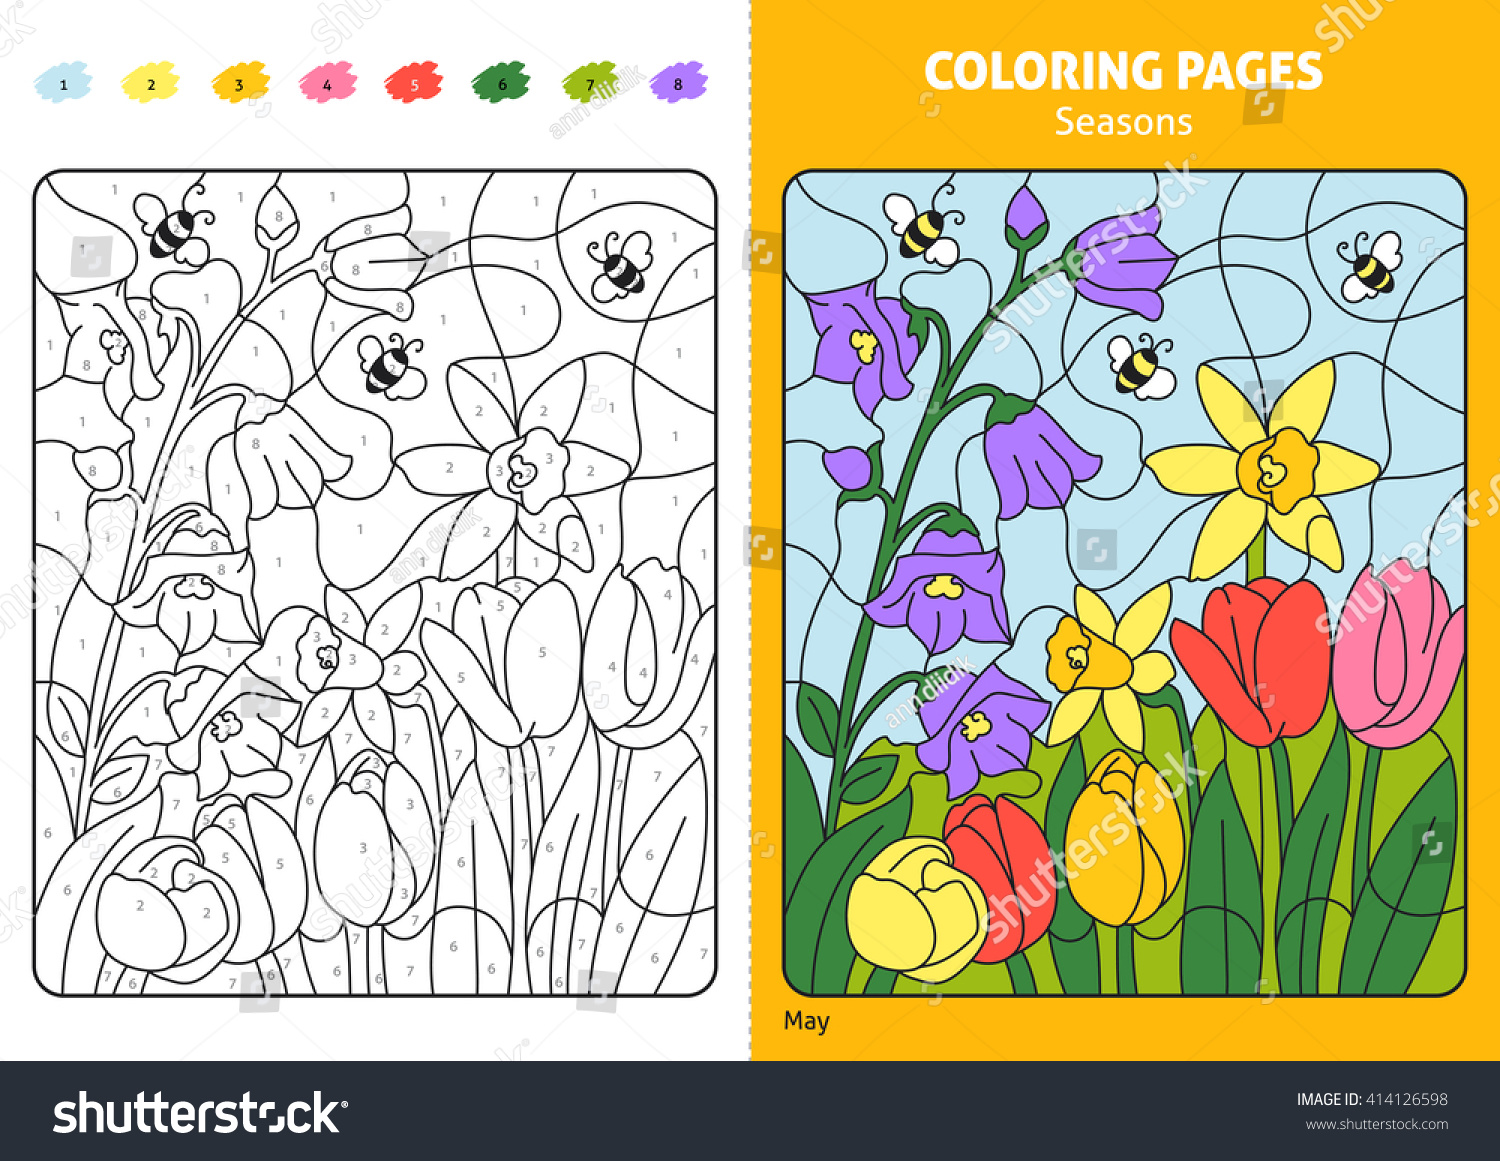 Seasons Coloring Page For Kids May Month Printable Design Book Puzzle